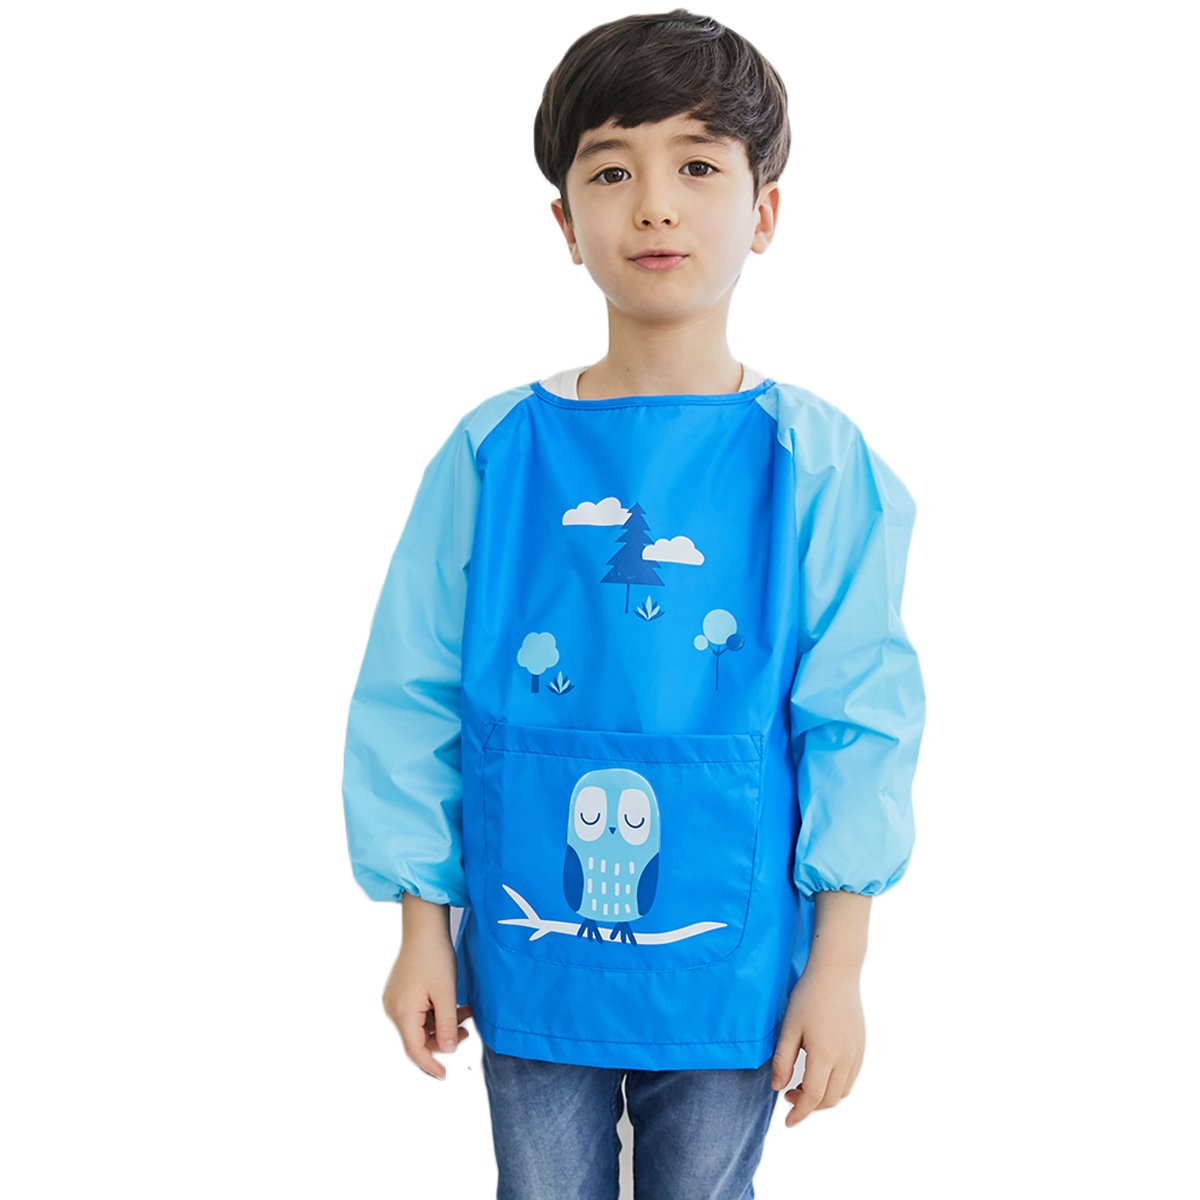 Hosim Kids Painting Apron Kitchen Art Craft Smock with Long Sleeves Large Pocket